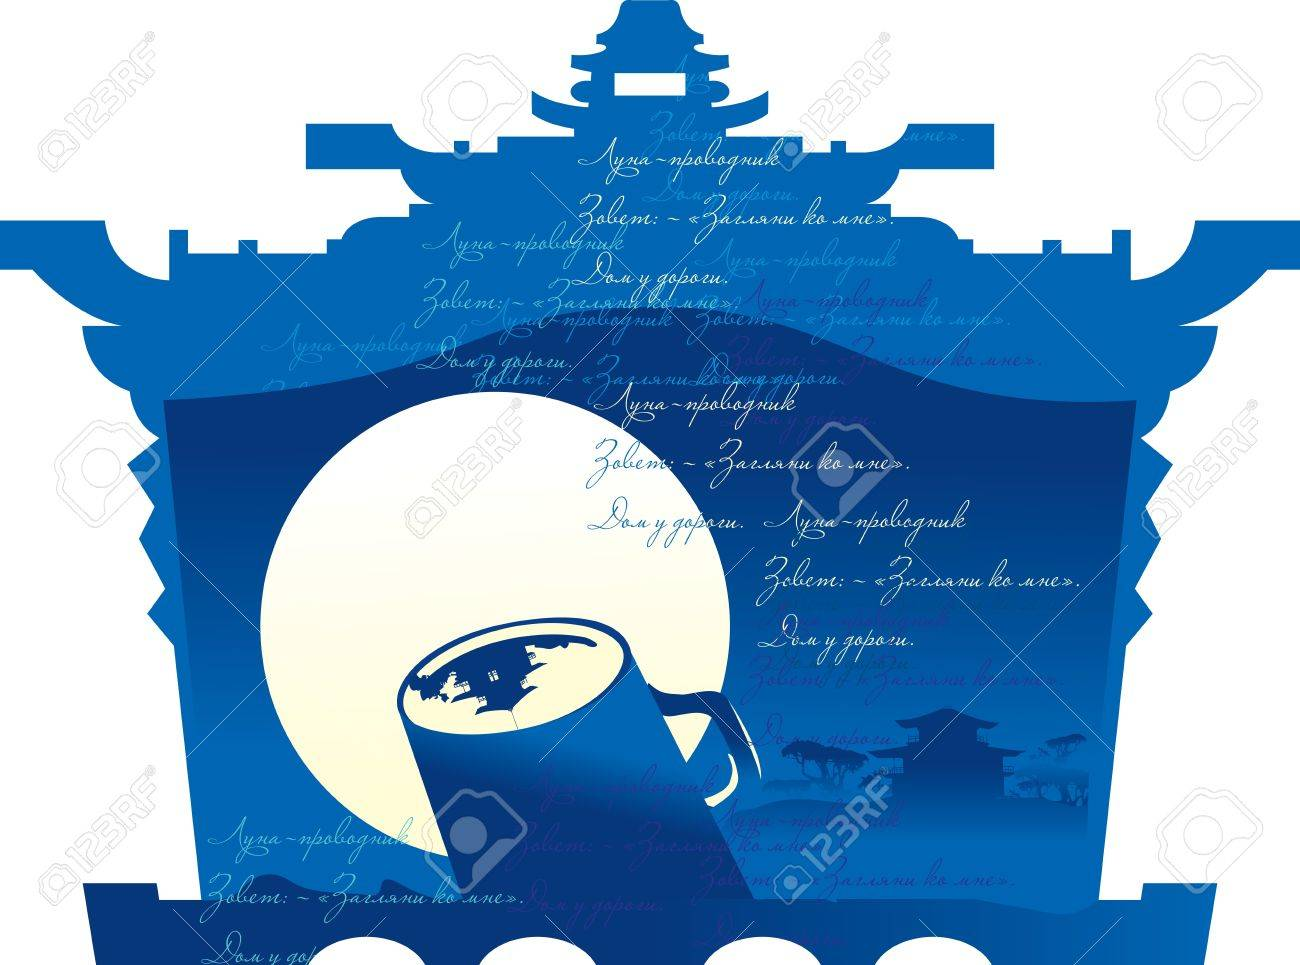 vector illustration contains the image abstract styled decorative traditional east background with pagoda and a cup of tea Stock Vector - 14491515